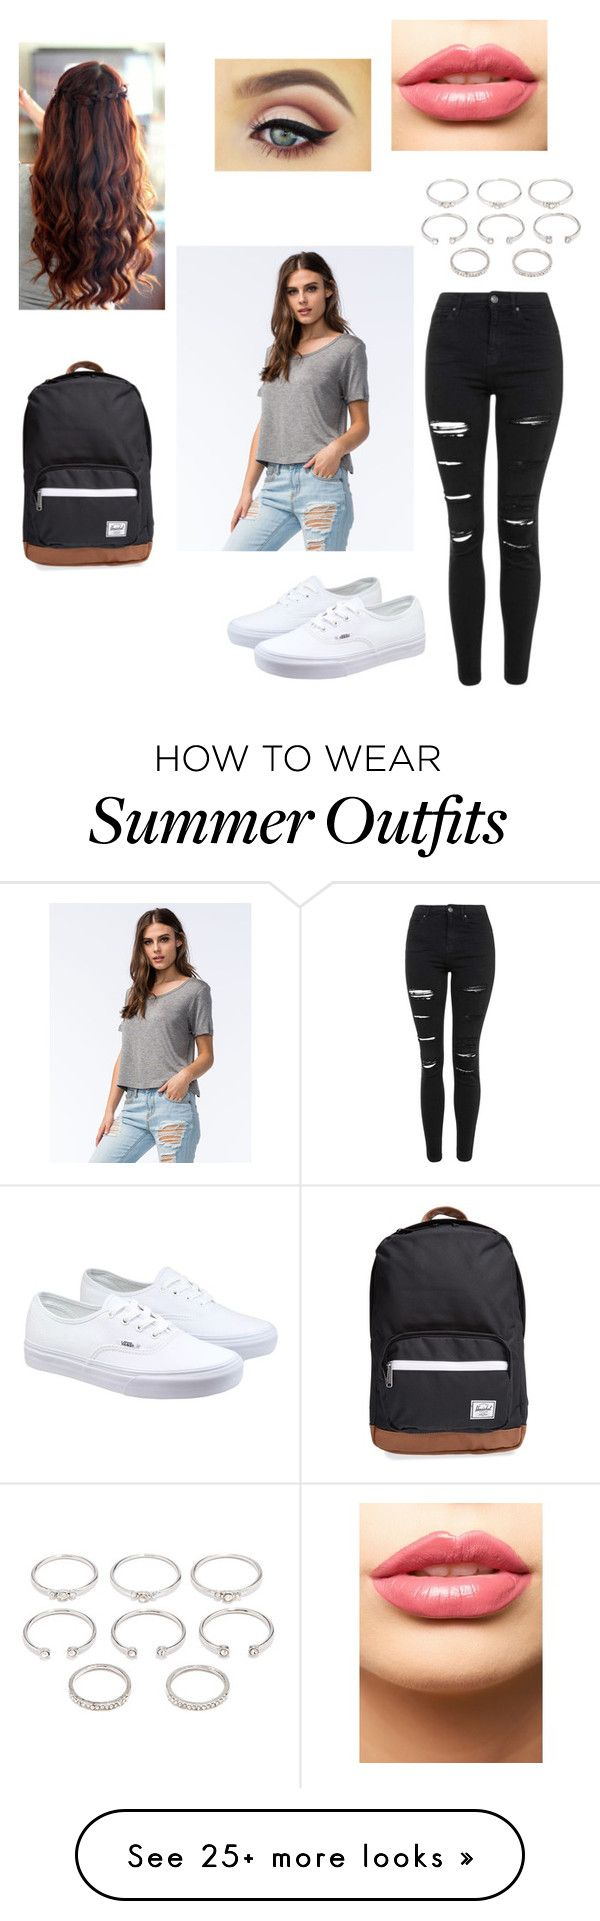 """""""Cute school day"""" by princesspink-13 on Polyvore featuring Full Tilt, Topshop, Forever 21, Vans, LASplash, Herschel Supply Co., women's clothing, women's fashion, women and female"""